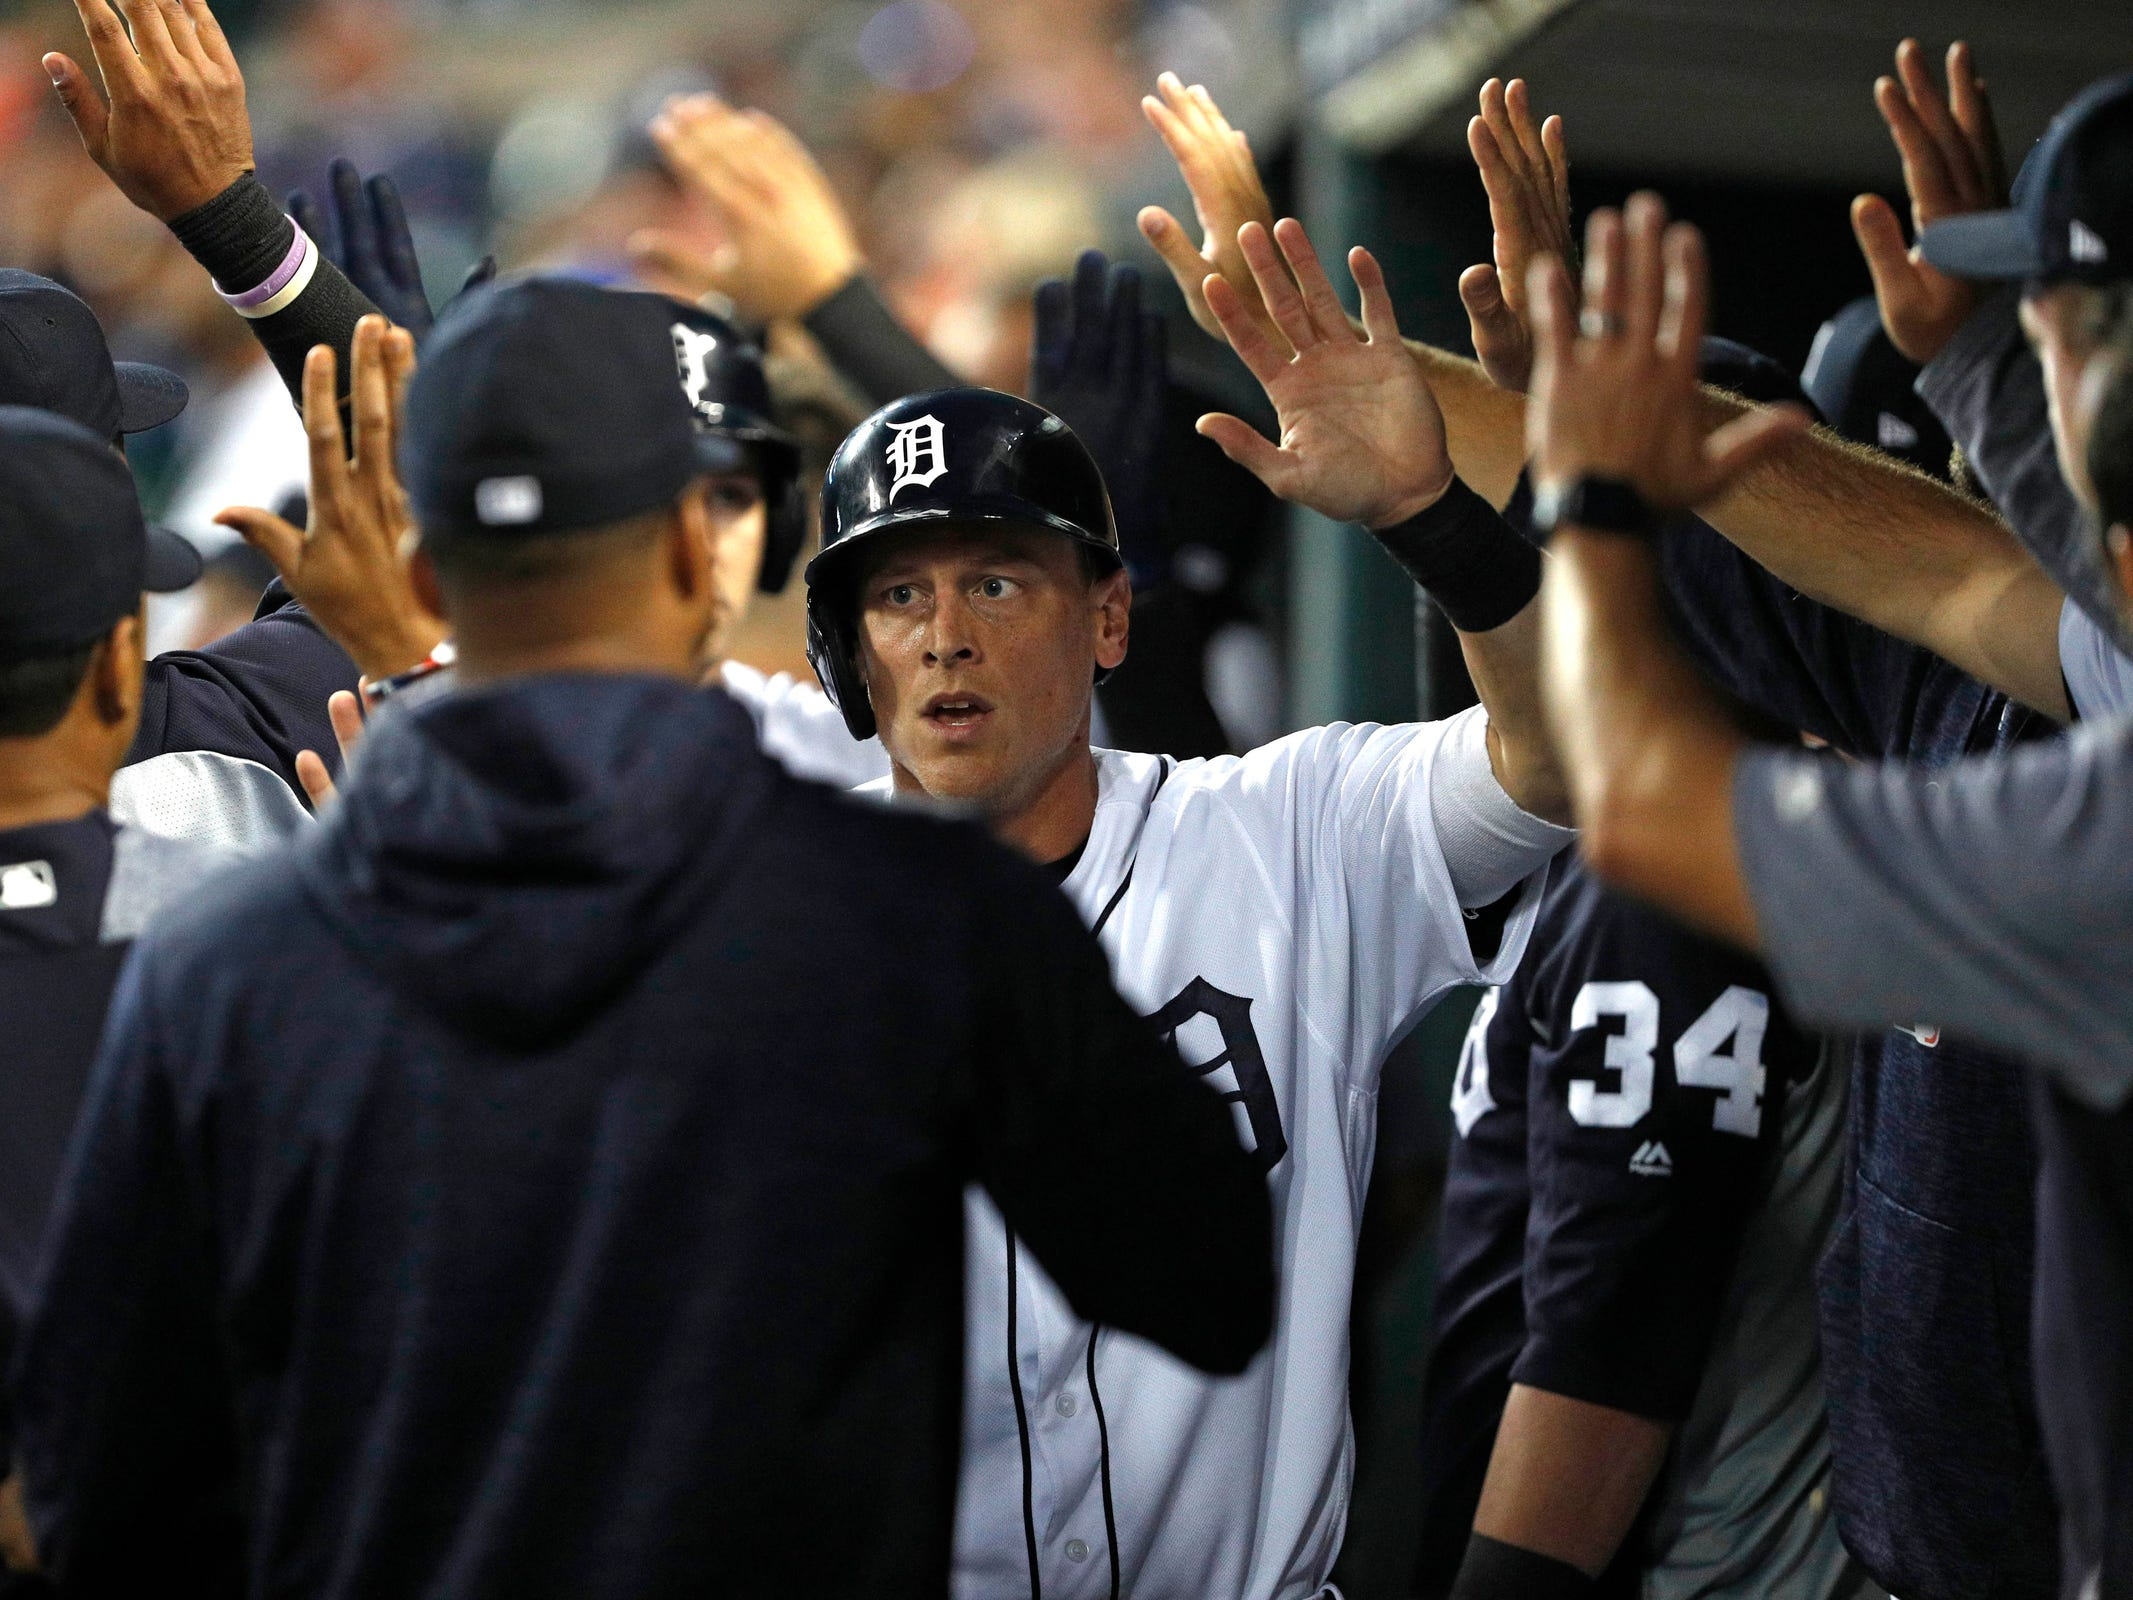 Detroit Tigers right fielder Jim Adduci celebrates with teammates in the dugout during the first inning against the Kansas City Royals at Comerica Park on Thursday, Sept. 20, 2018, in Detroit.